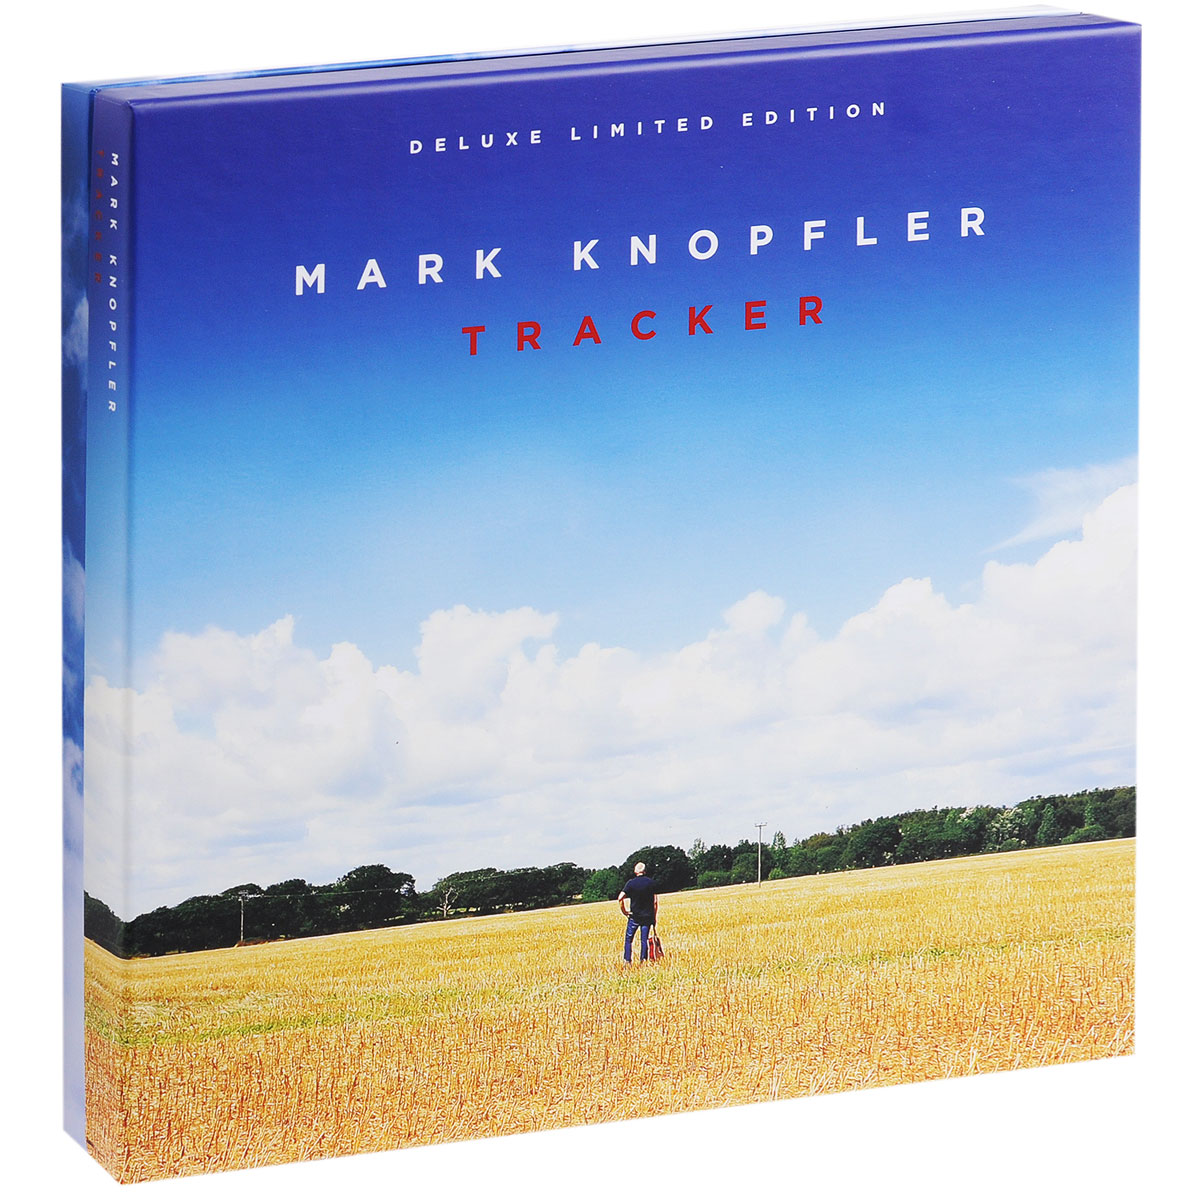 Марк Нопфлер Mark Knopfler. Tracker. Deluxe Limited Edition (2 CD + DVD + 2 LP) джеймс блант james blunt all the lost souls deluxe edition cd dvd